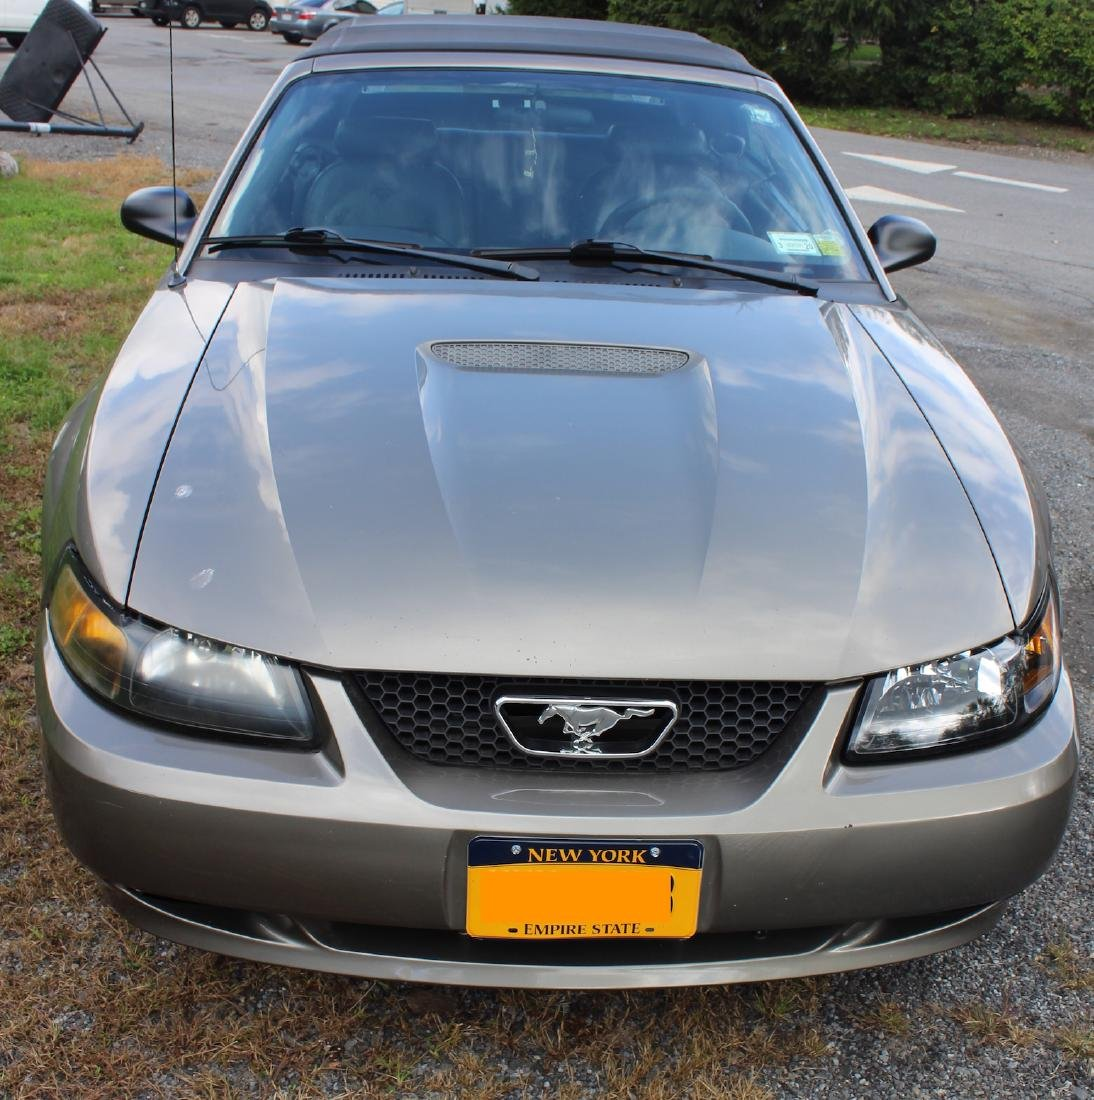 2001 Mustang Convertible. Leather Interior - 9